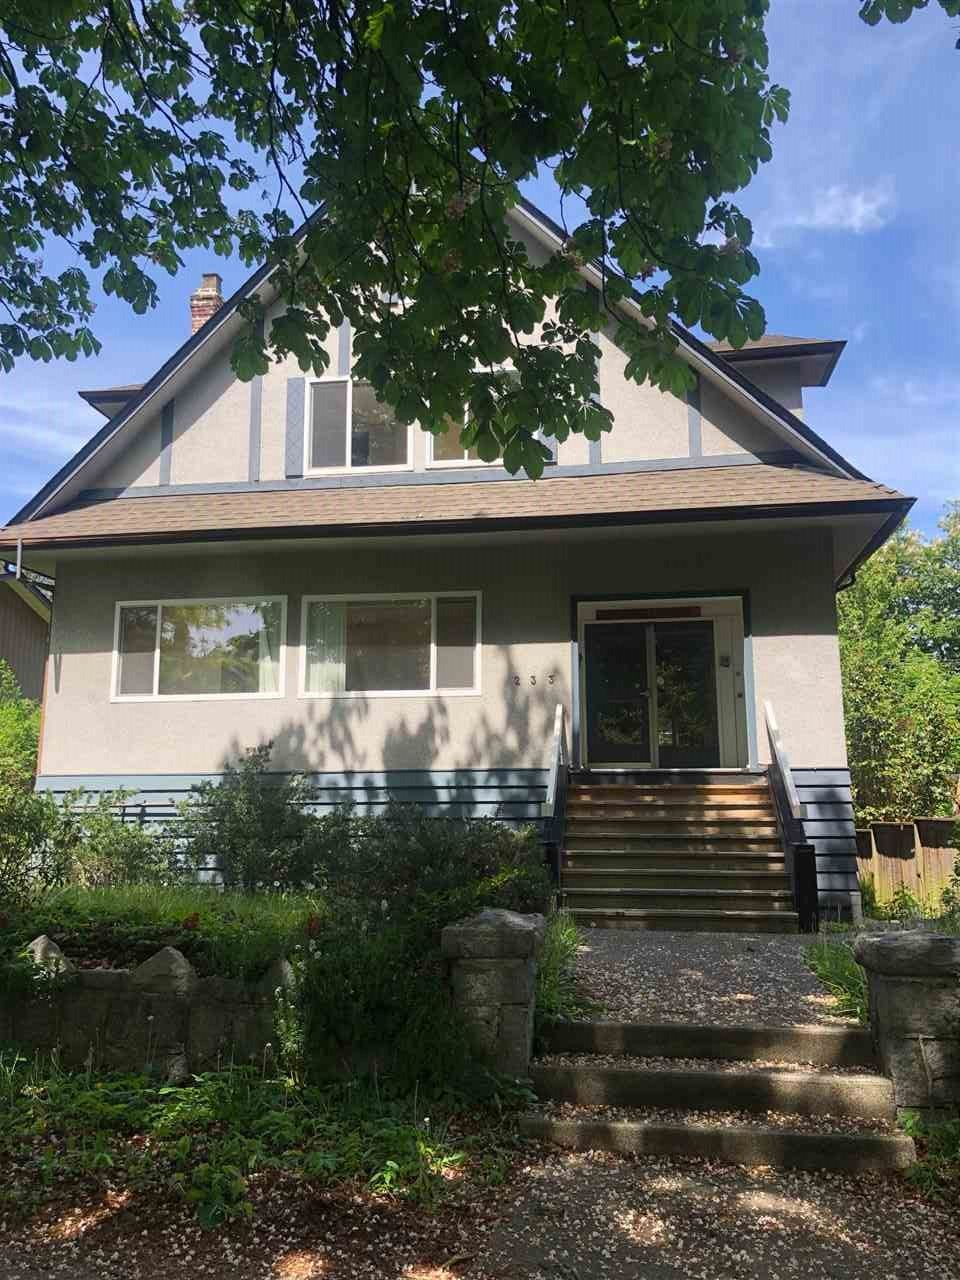 Main Photo: 233 W 15TH Avenue in Vancouver: Mount Pleasant VW House for sale (Vancouver West)  : MLS®# R2370312